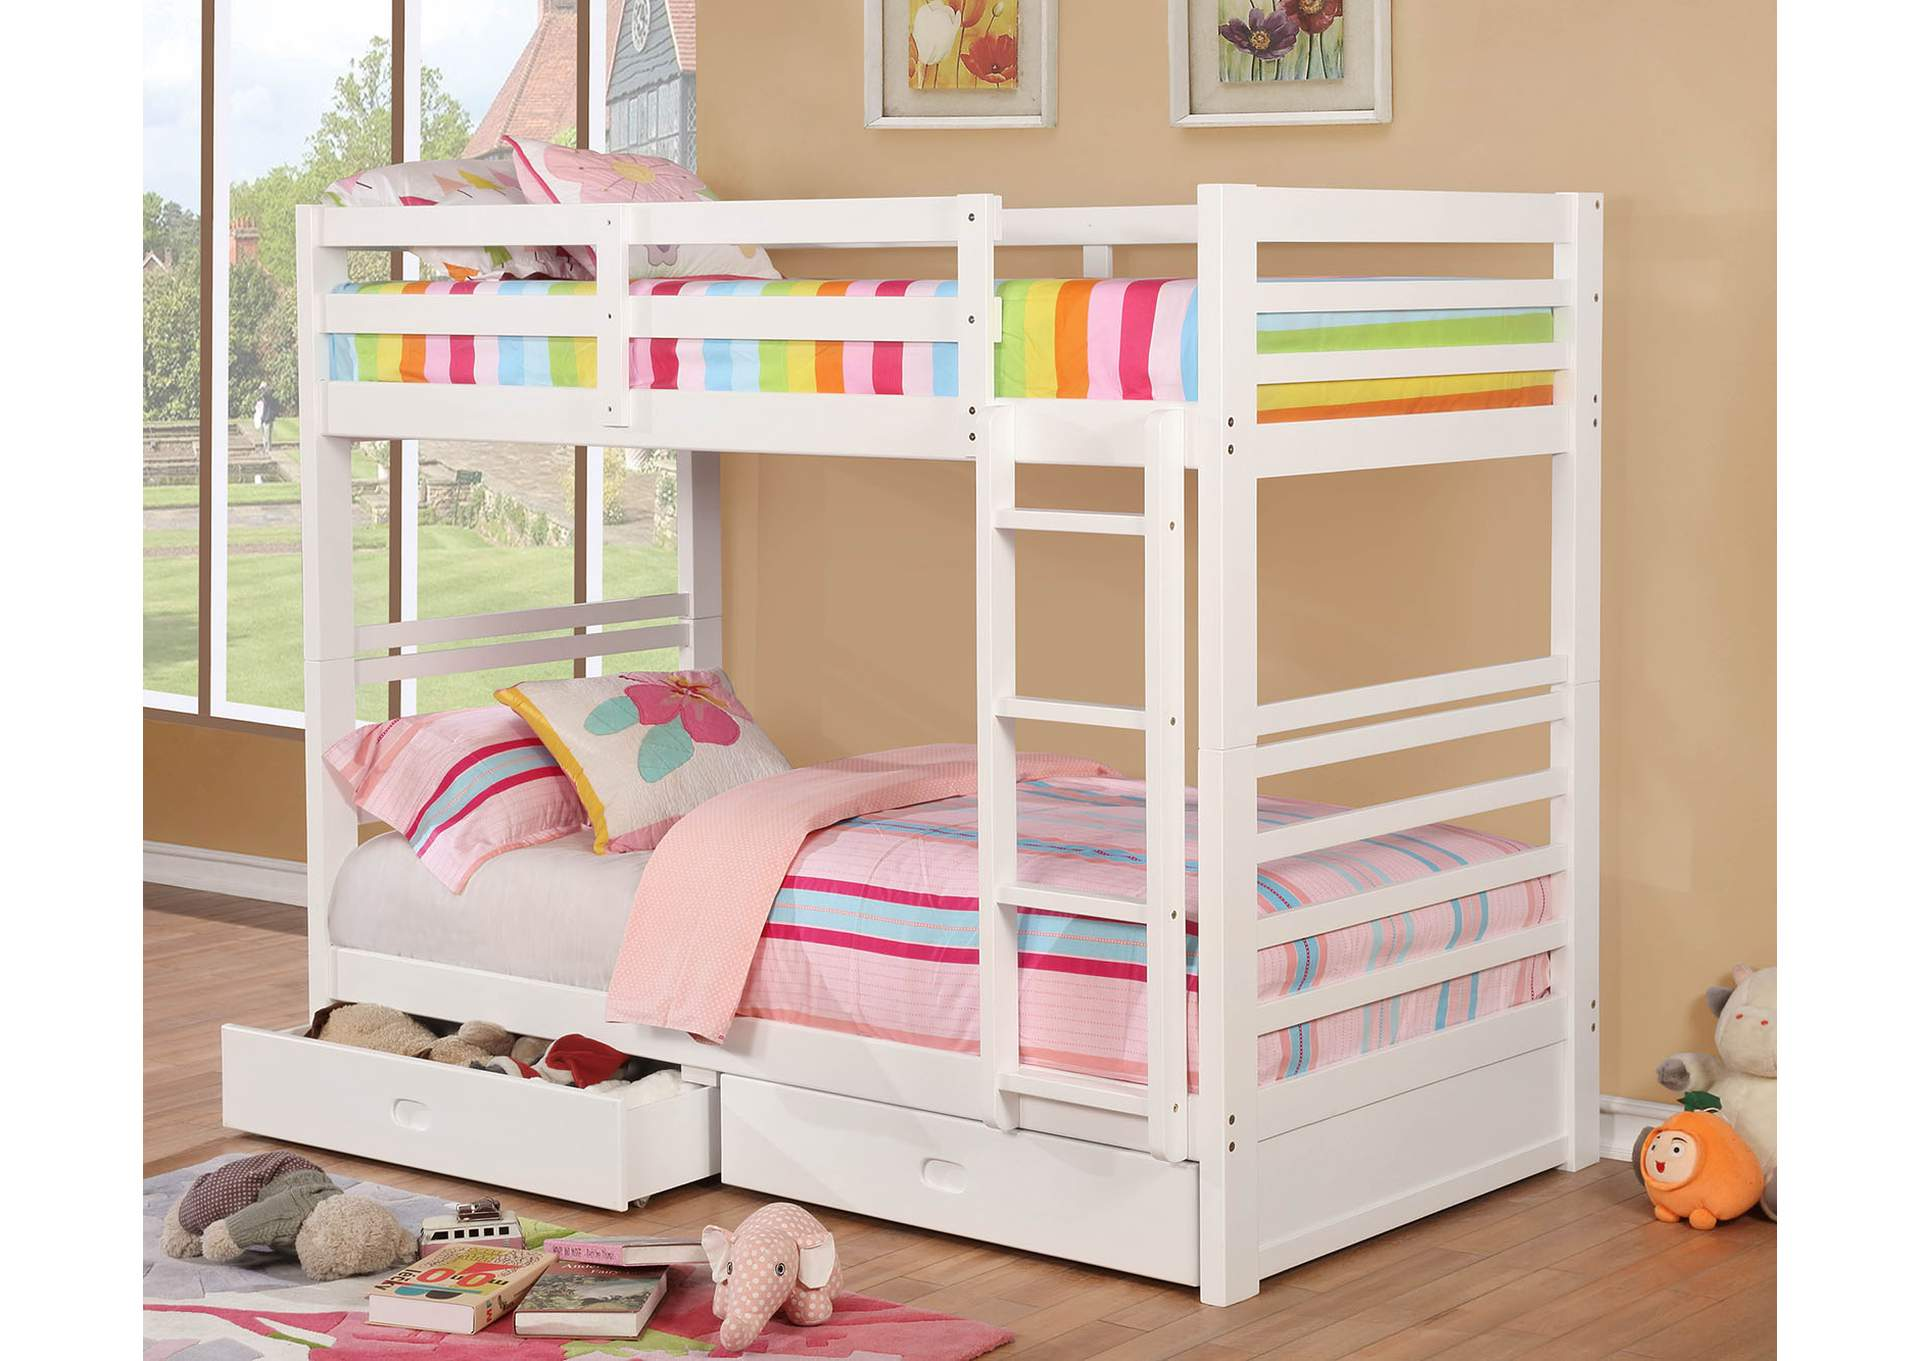 California IV White Twin/Twin Bunk Bed,Furniture of America